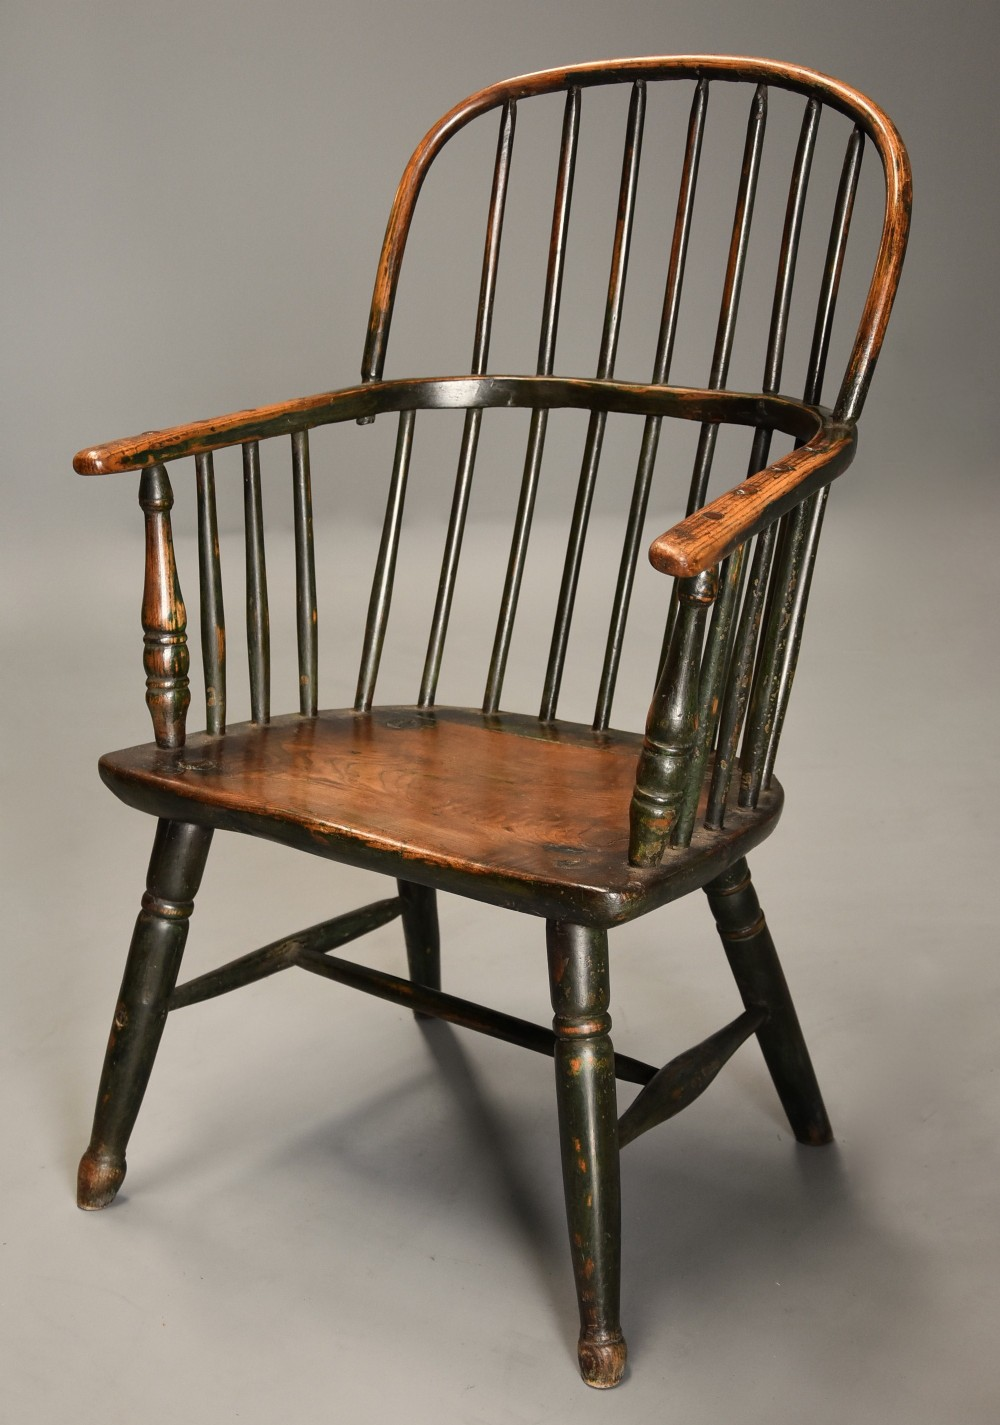 superb early 19th century west country ash hoop back windsor chair with wonderful patina